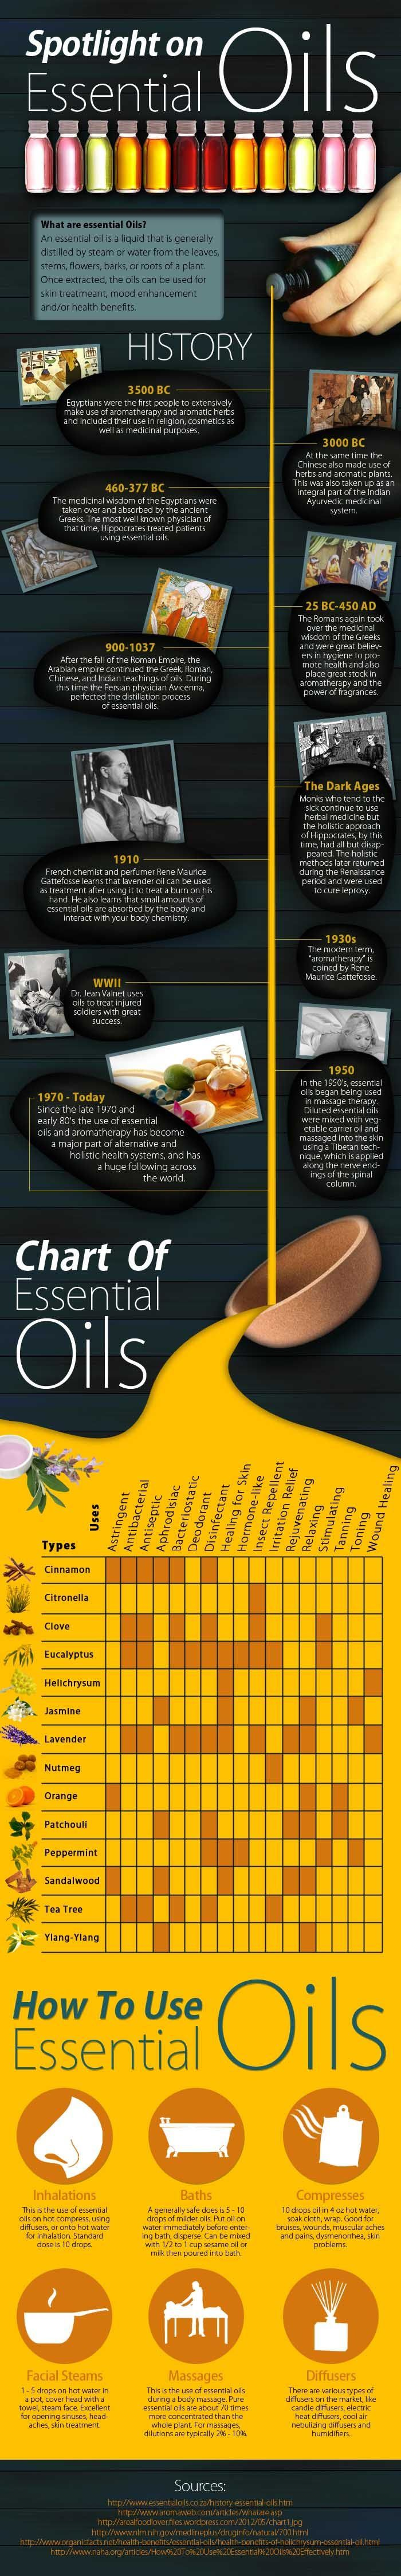 12 things you probably didn't know about essential oils...plus, a handy uses infographic! | Gaia